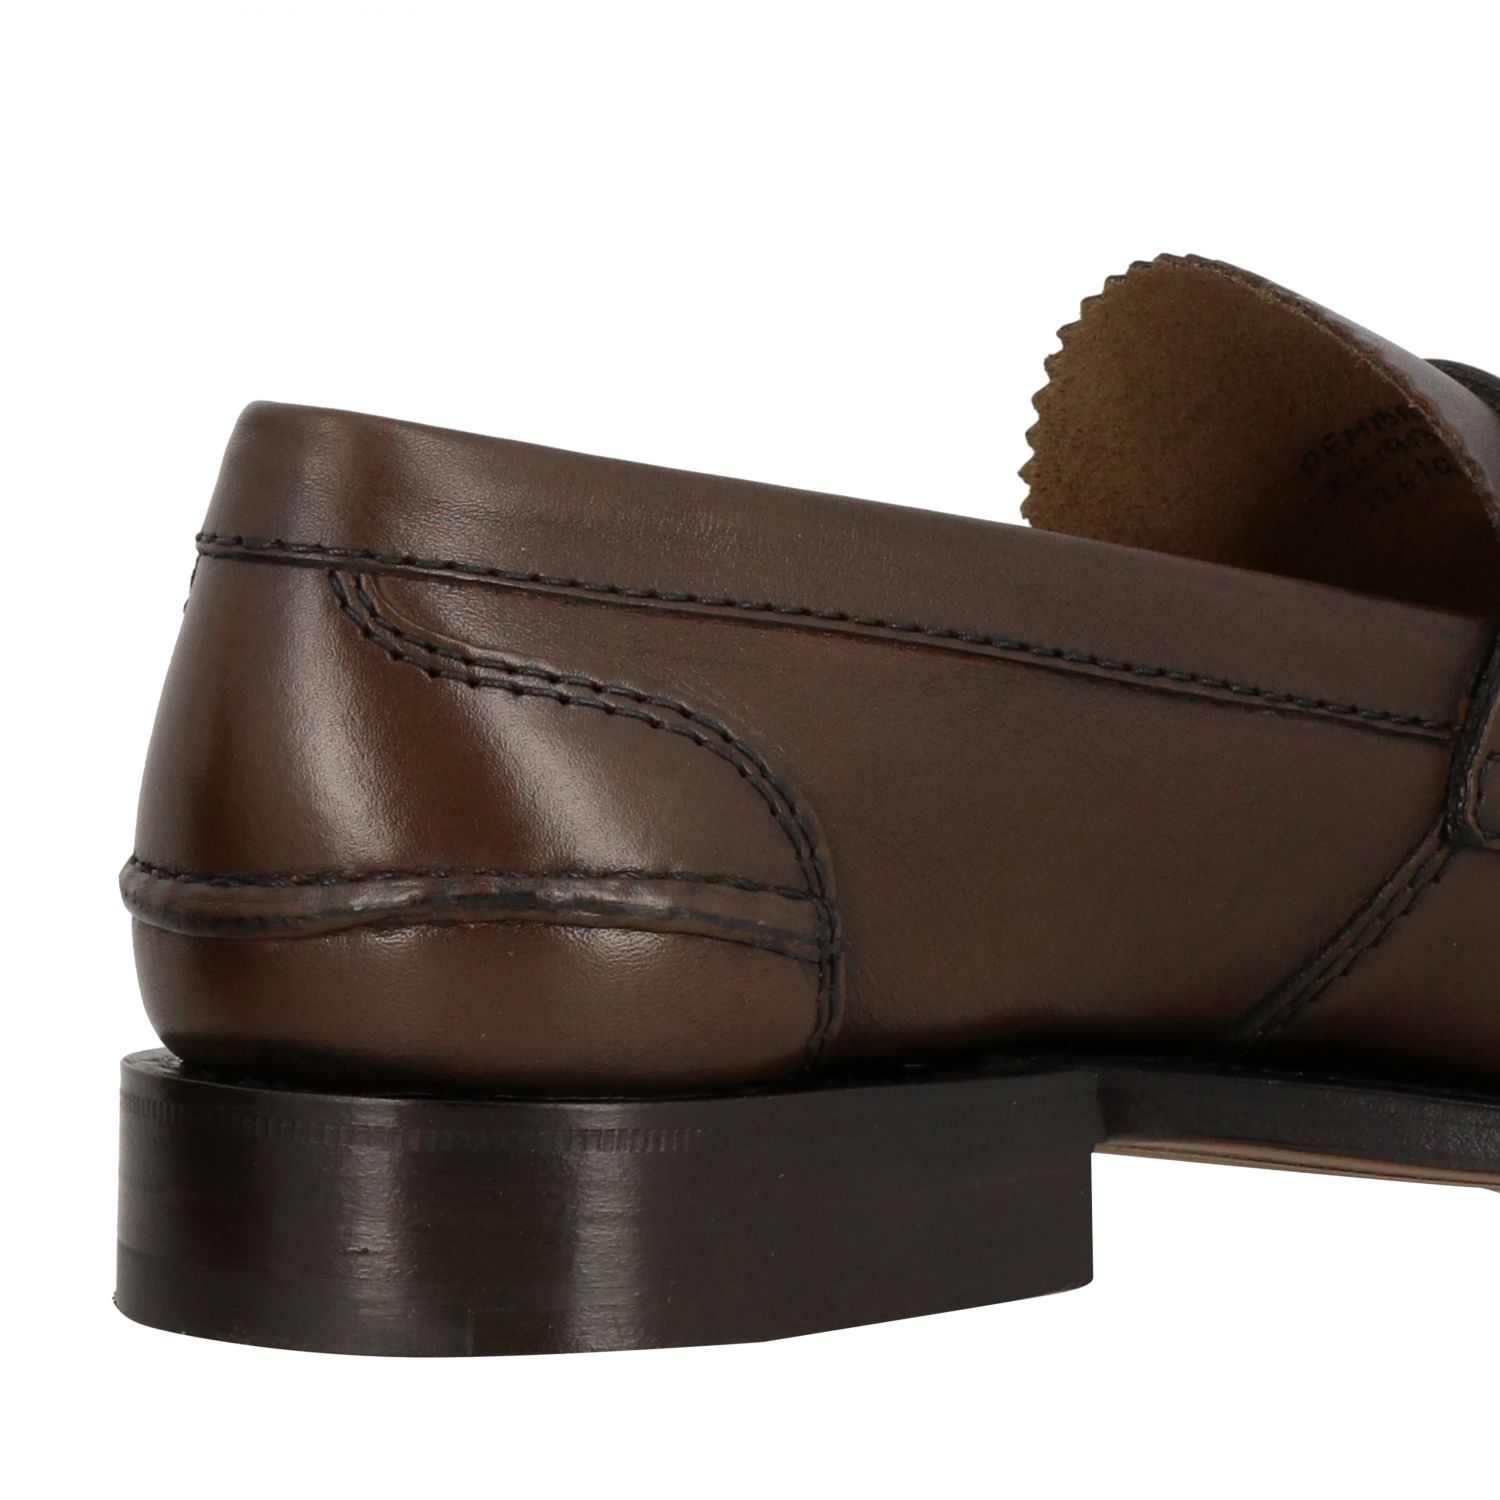 Loafers Church's: Pembrey Church's leather loafer honey 5